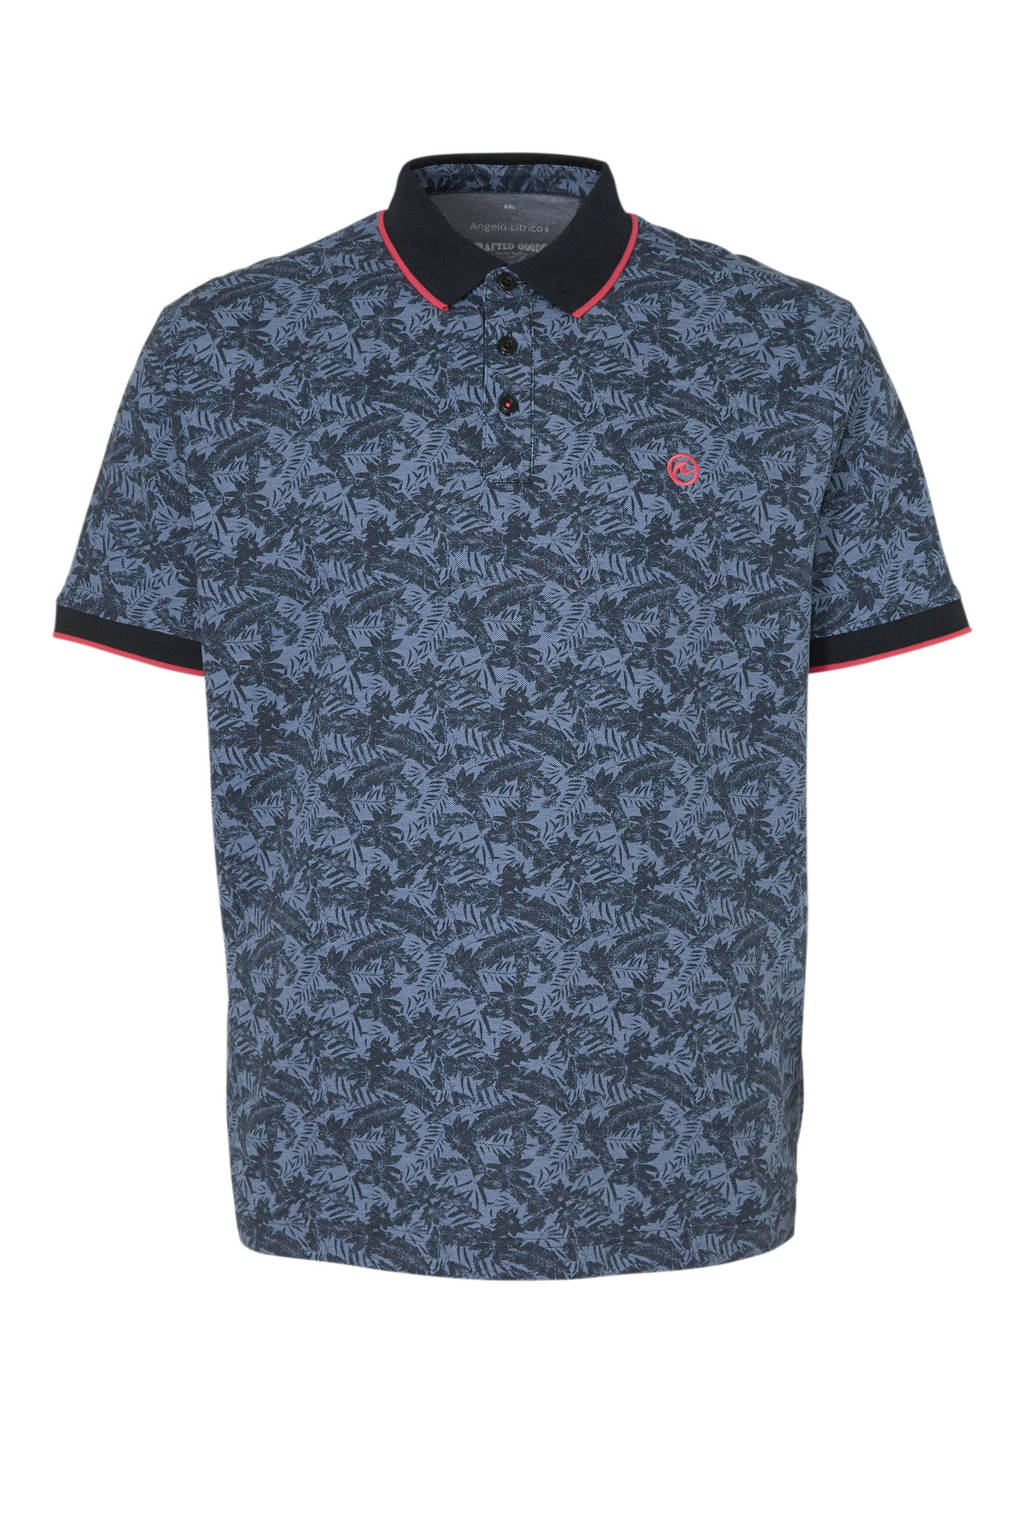 C&A XL Angelo Litrico polo, Donkerblauw